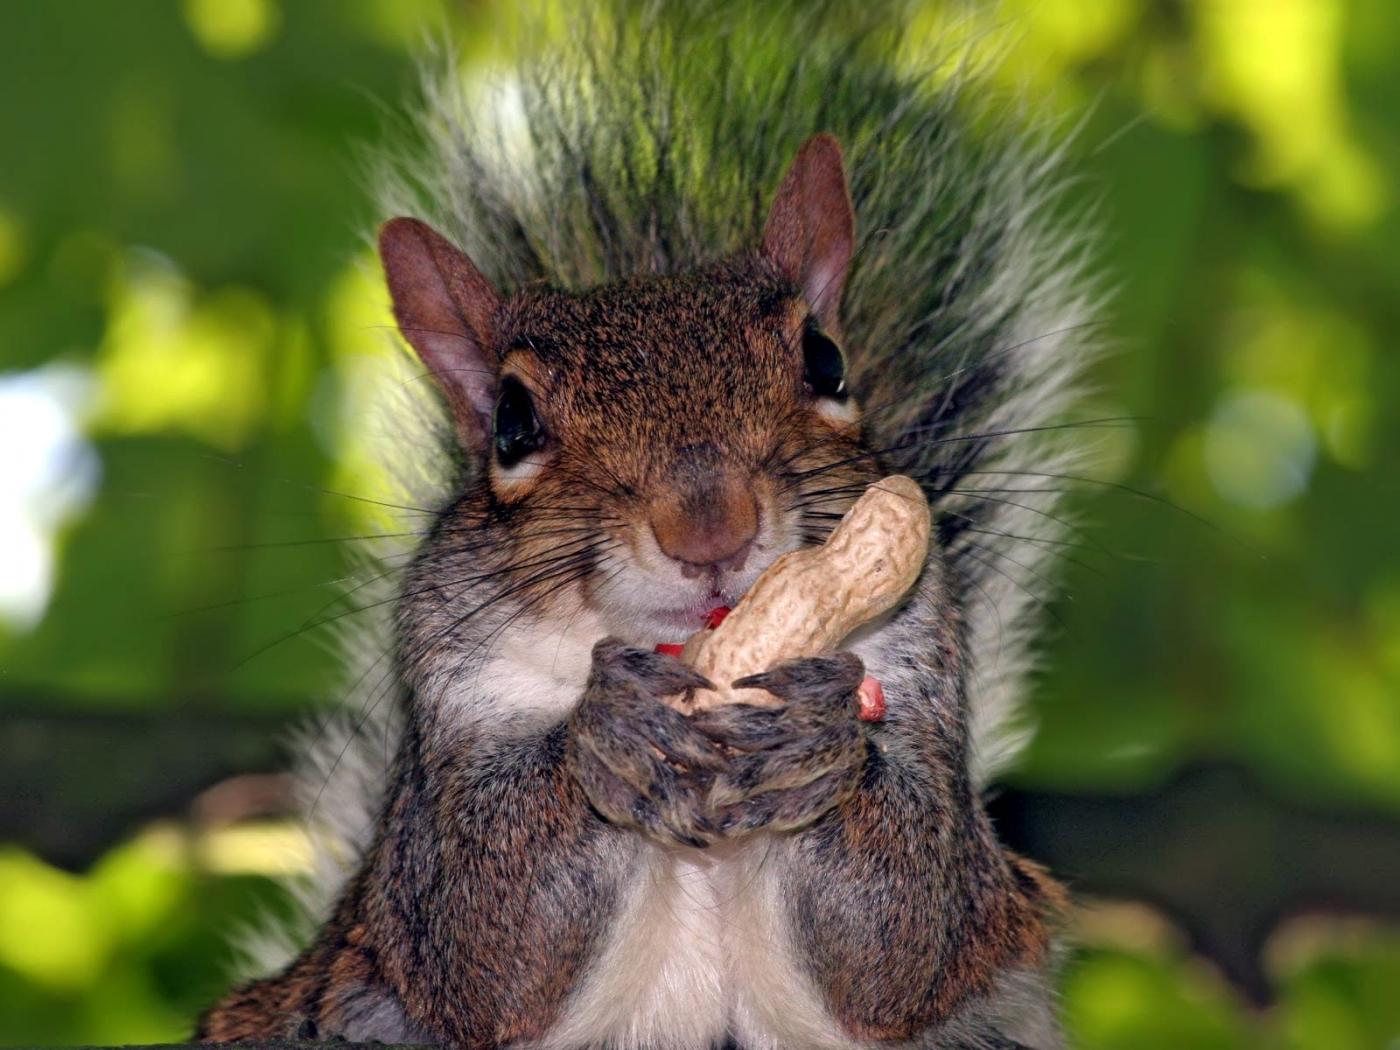 45820 download wallpaper Animals, Squirrel screensavers and pictures for free